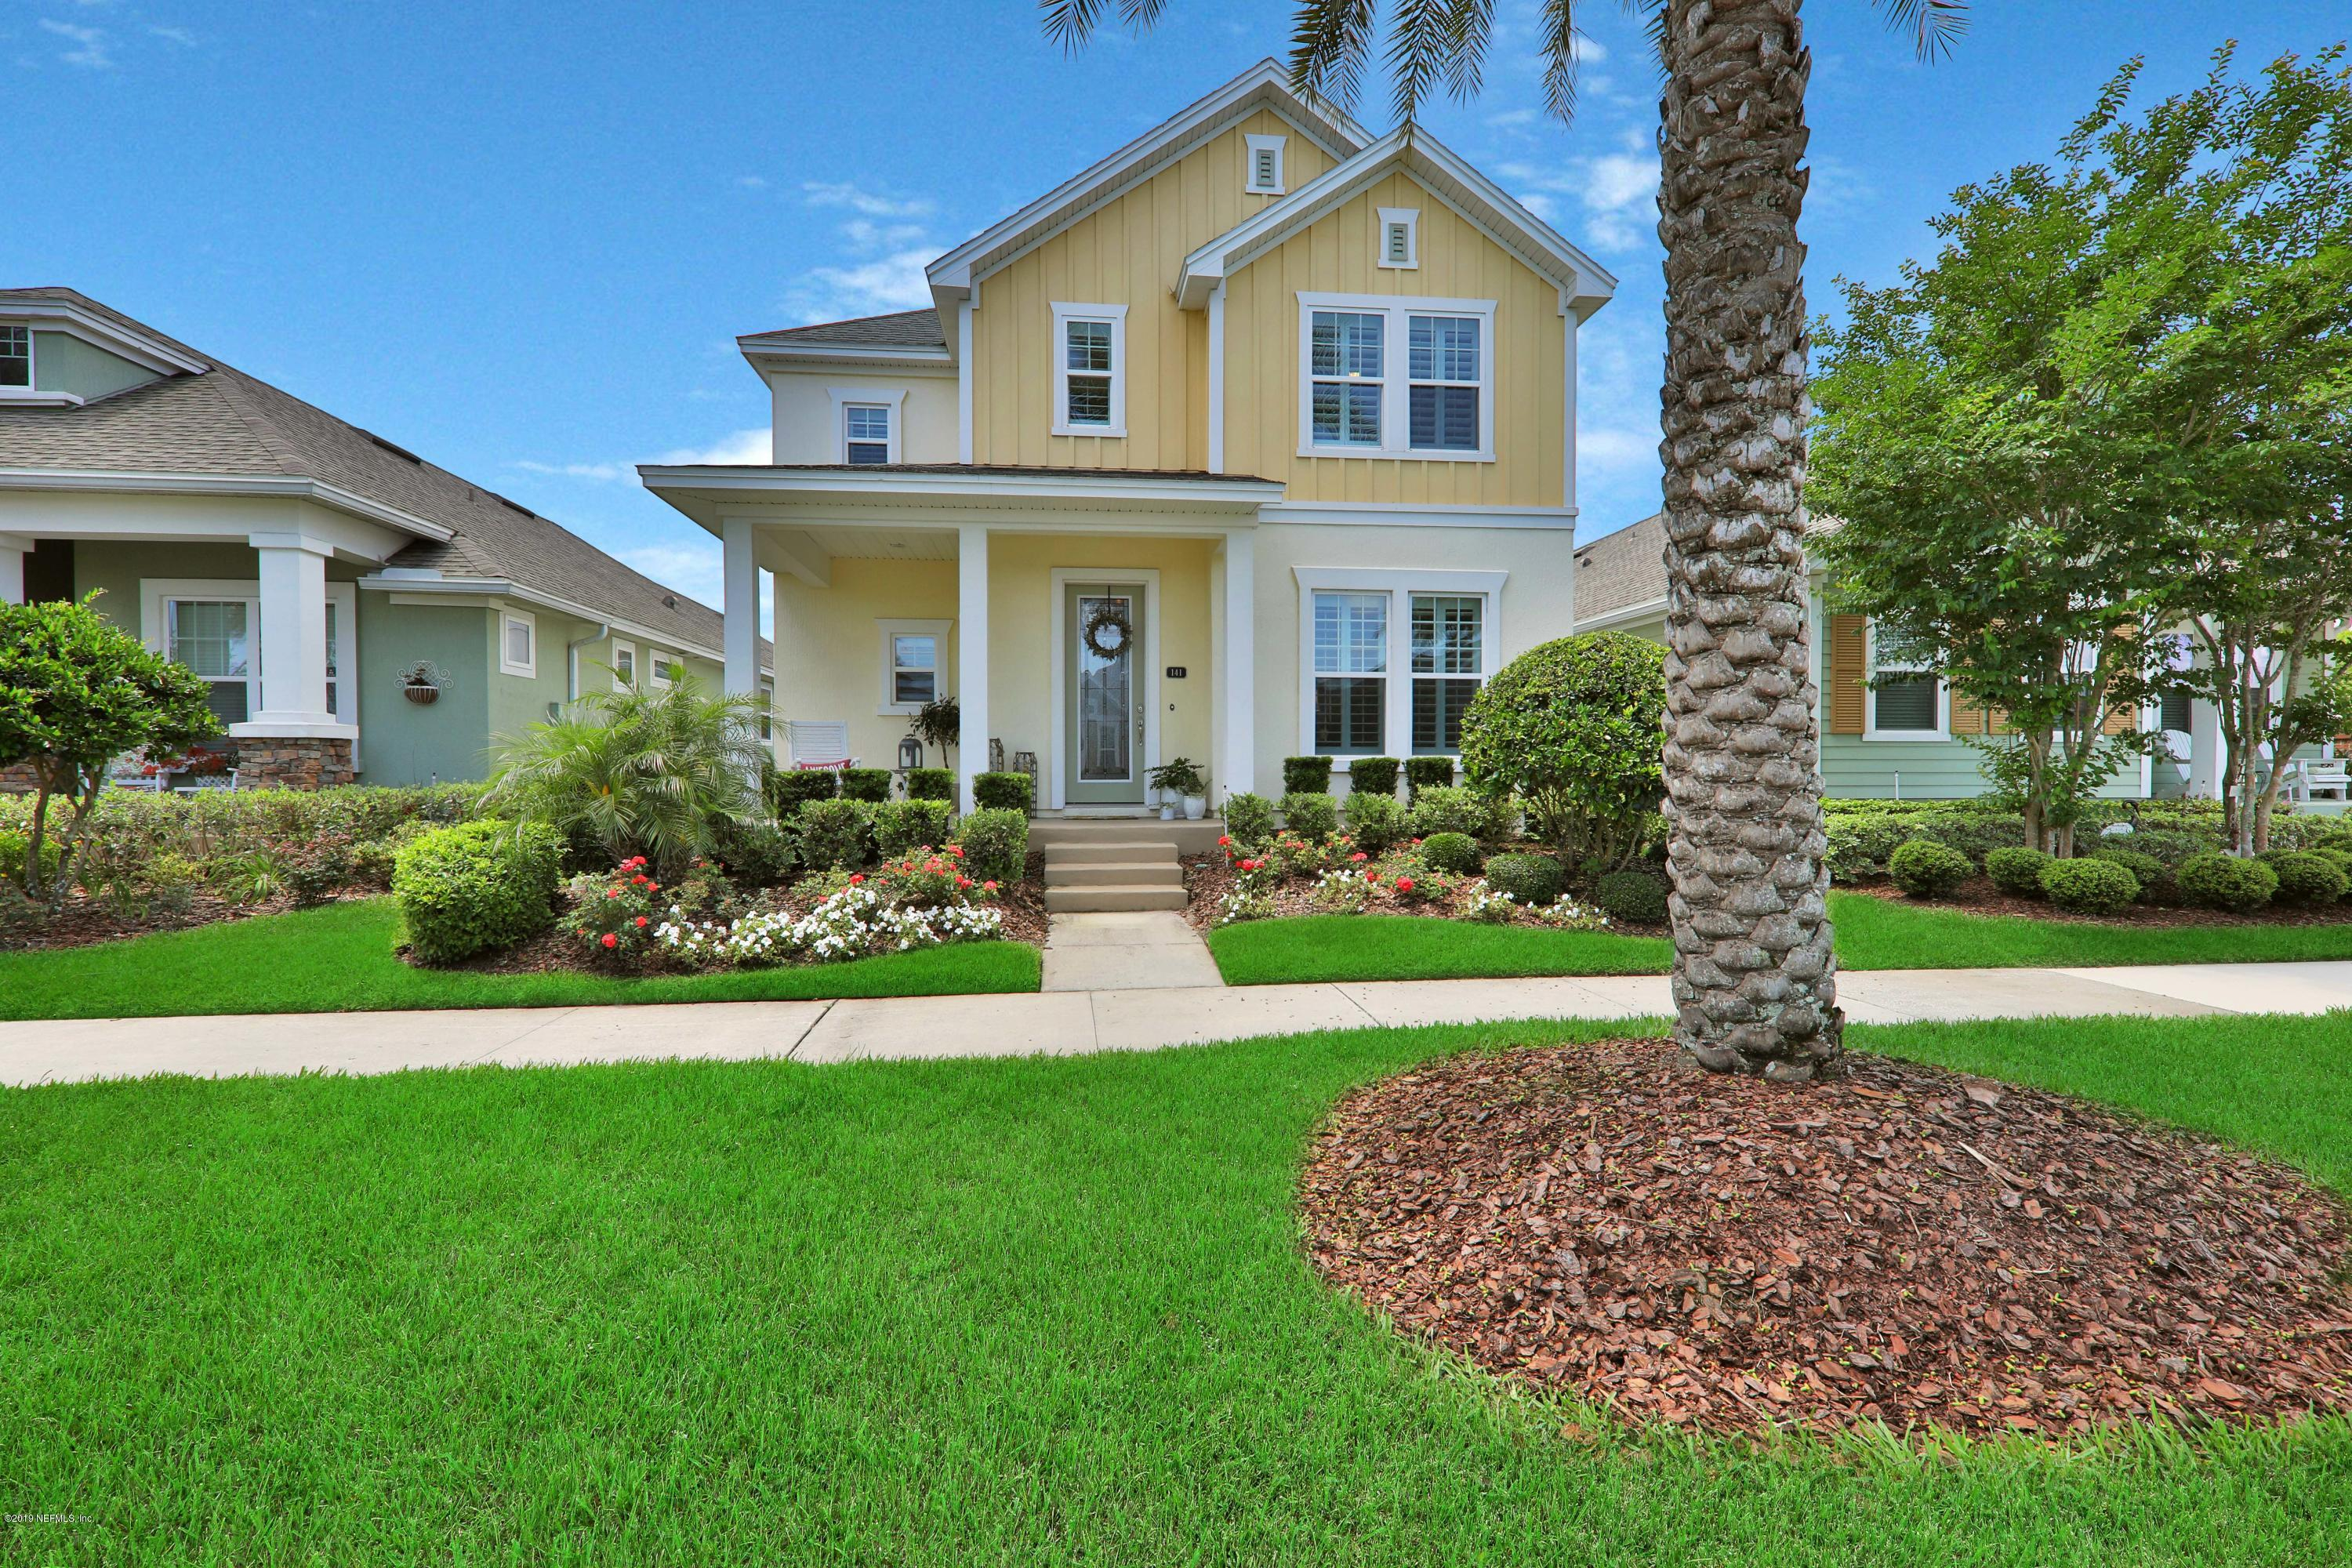 Photo of 141 GREENDALE, PONTE VEDRA, FL 32081